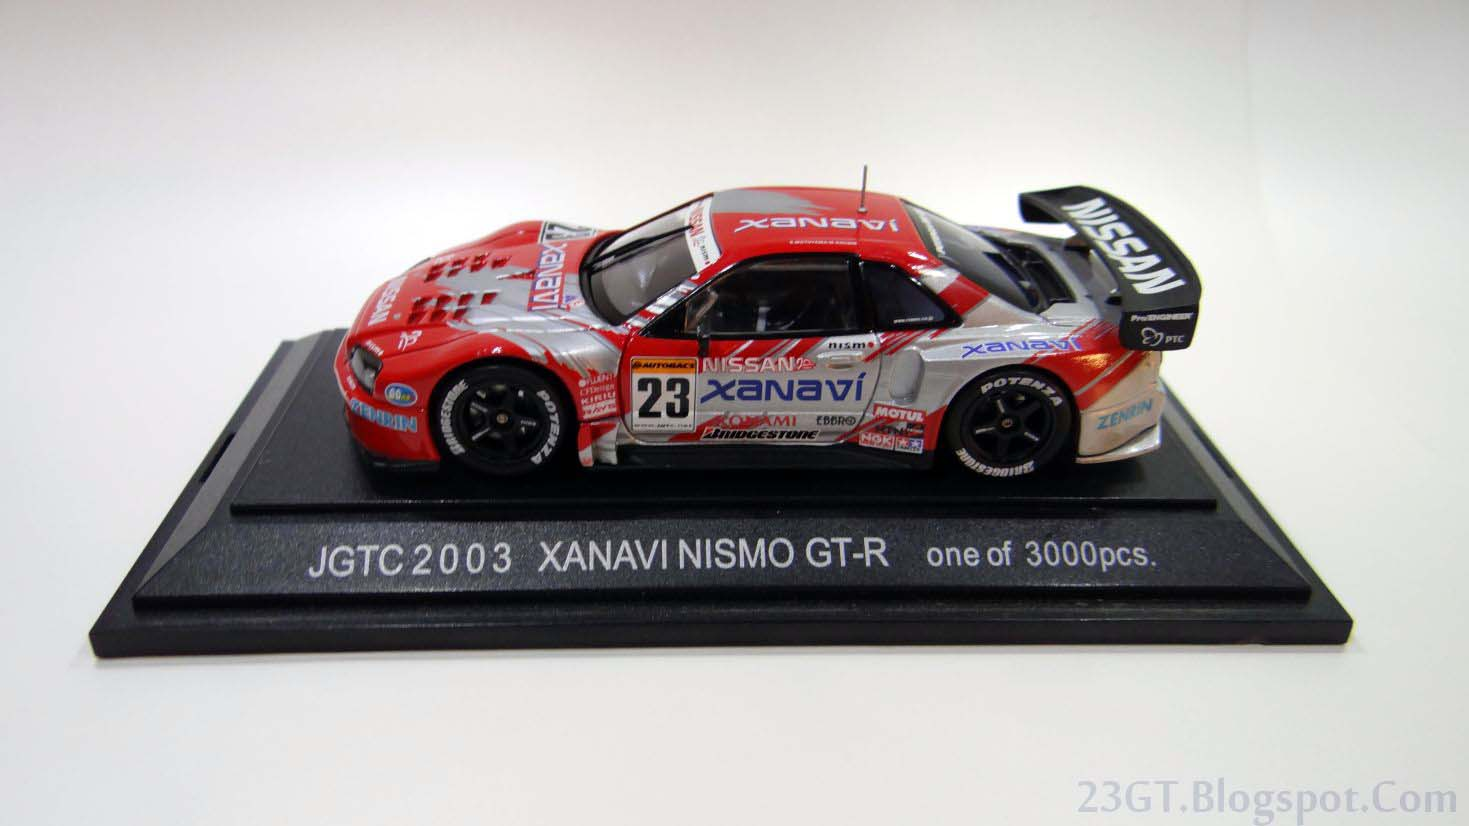 Auto modellista ebbro 143 2003 xanavi nismo skyline gt r 23gt coming into 2003 nissan was going through a bit of a dry spell in gt500 theyd won the drivers title in 1999 when the r34 first debuted then almost vanachro Choice Image